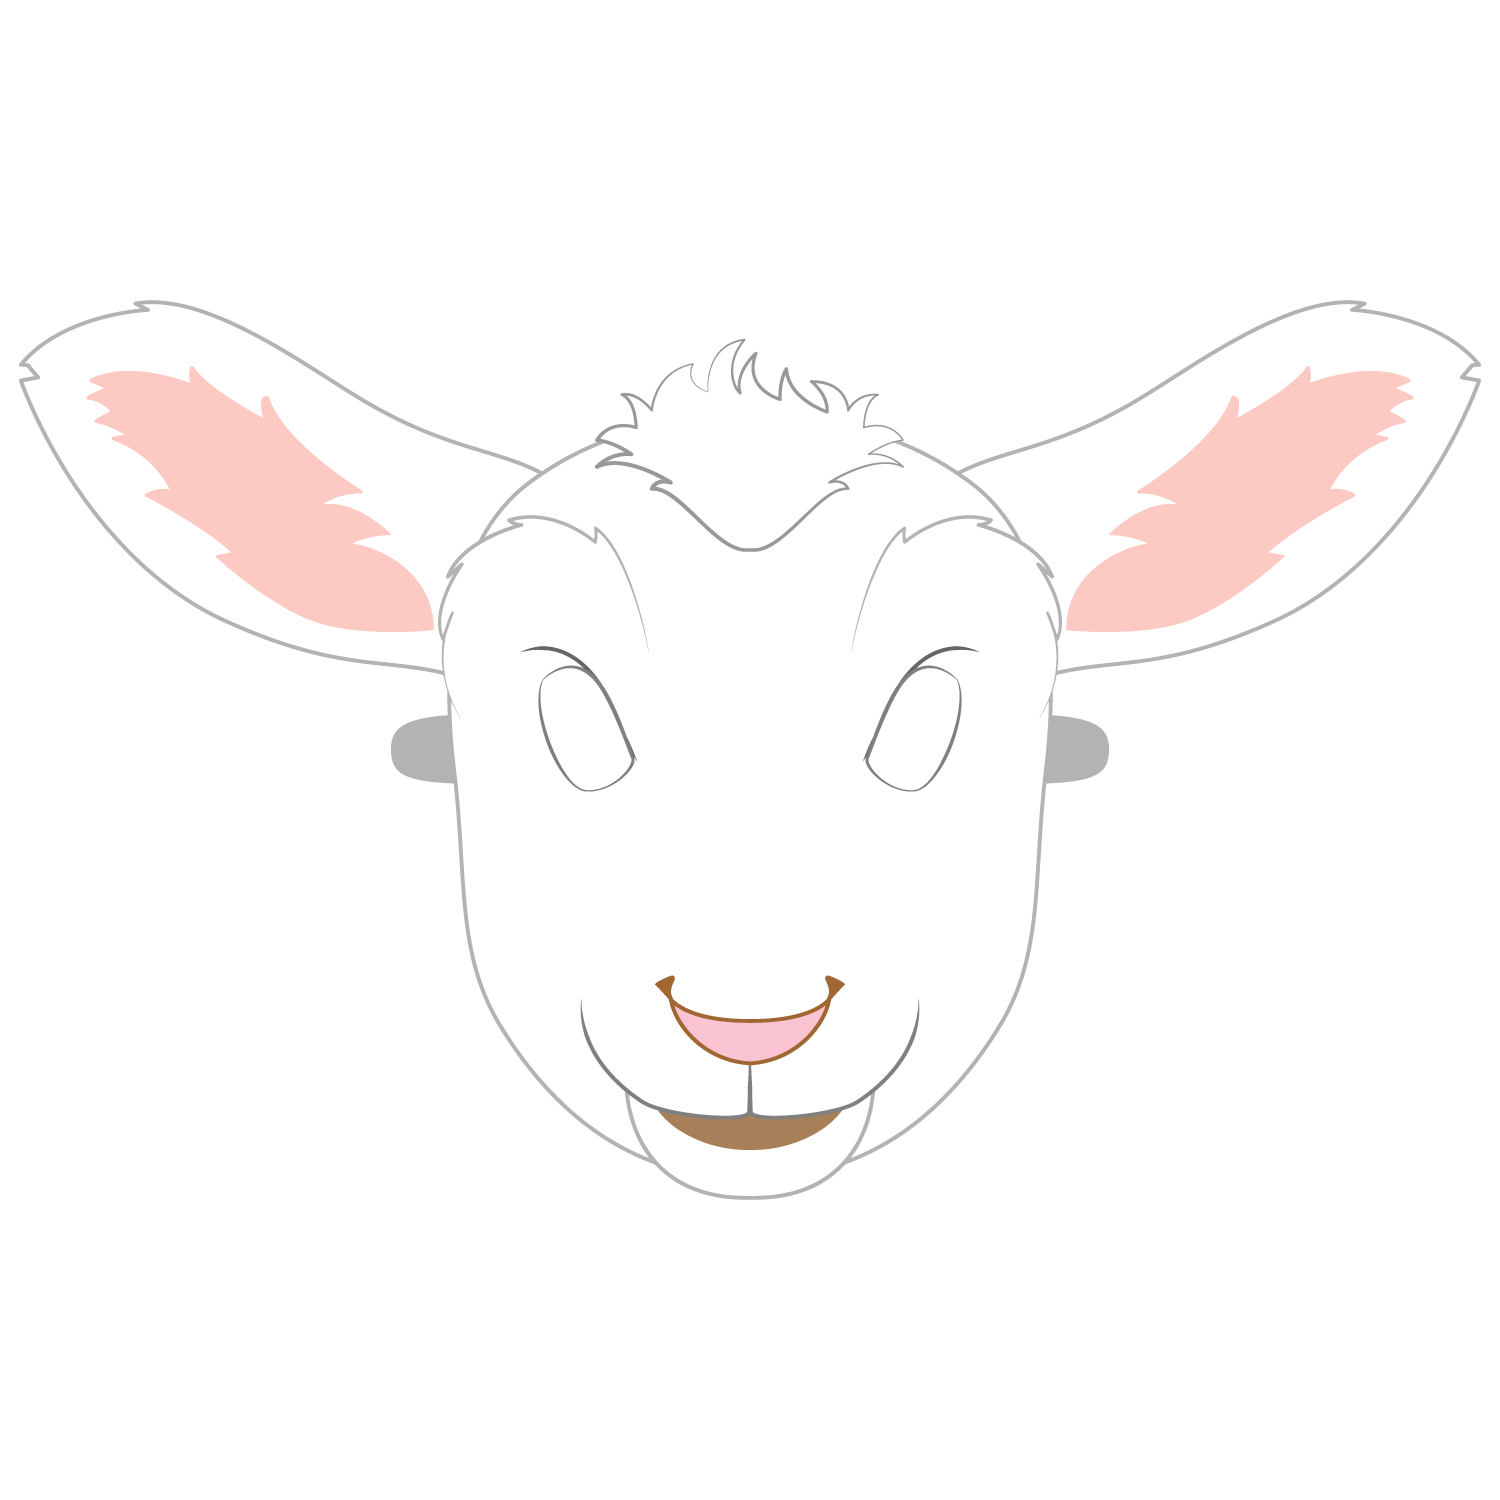 Lamb Mask Template | Free Printable Papercraft Templates - Free Printable Sheep Mask